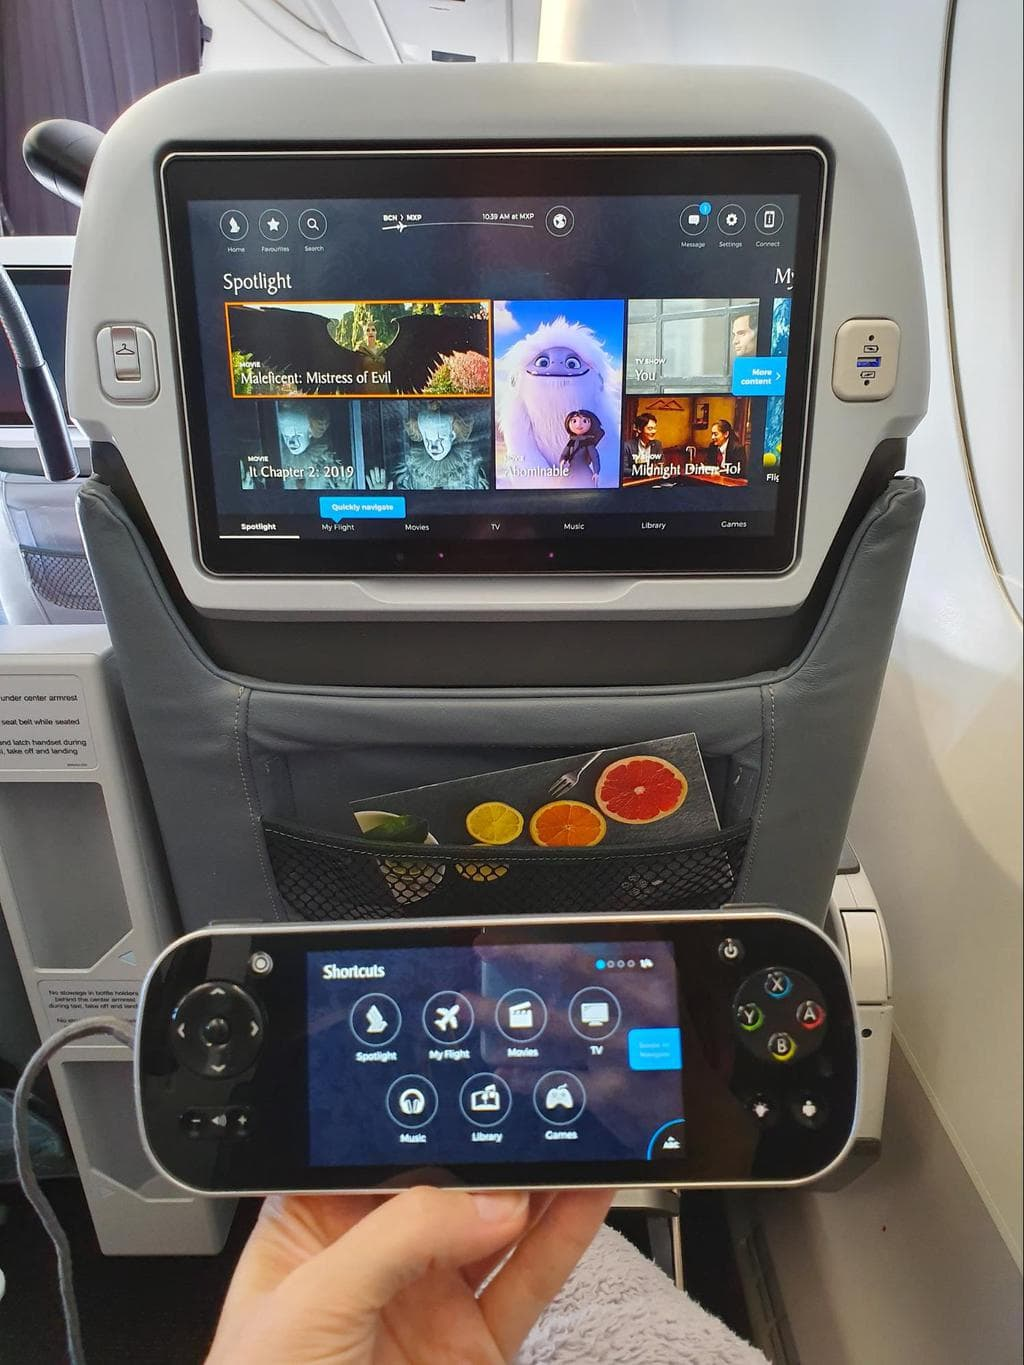 Entertainment system on Singapore Airlines Premium Economy